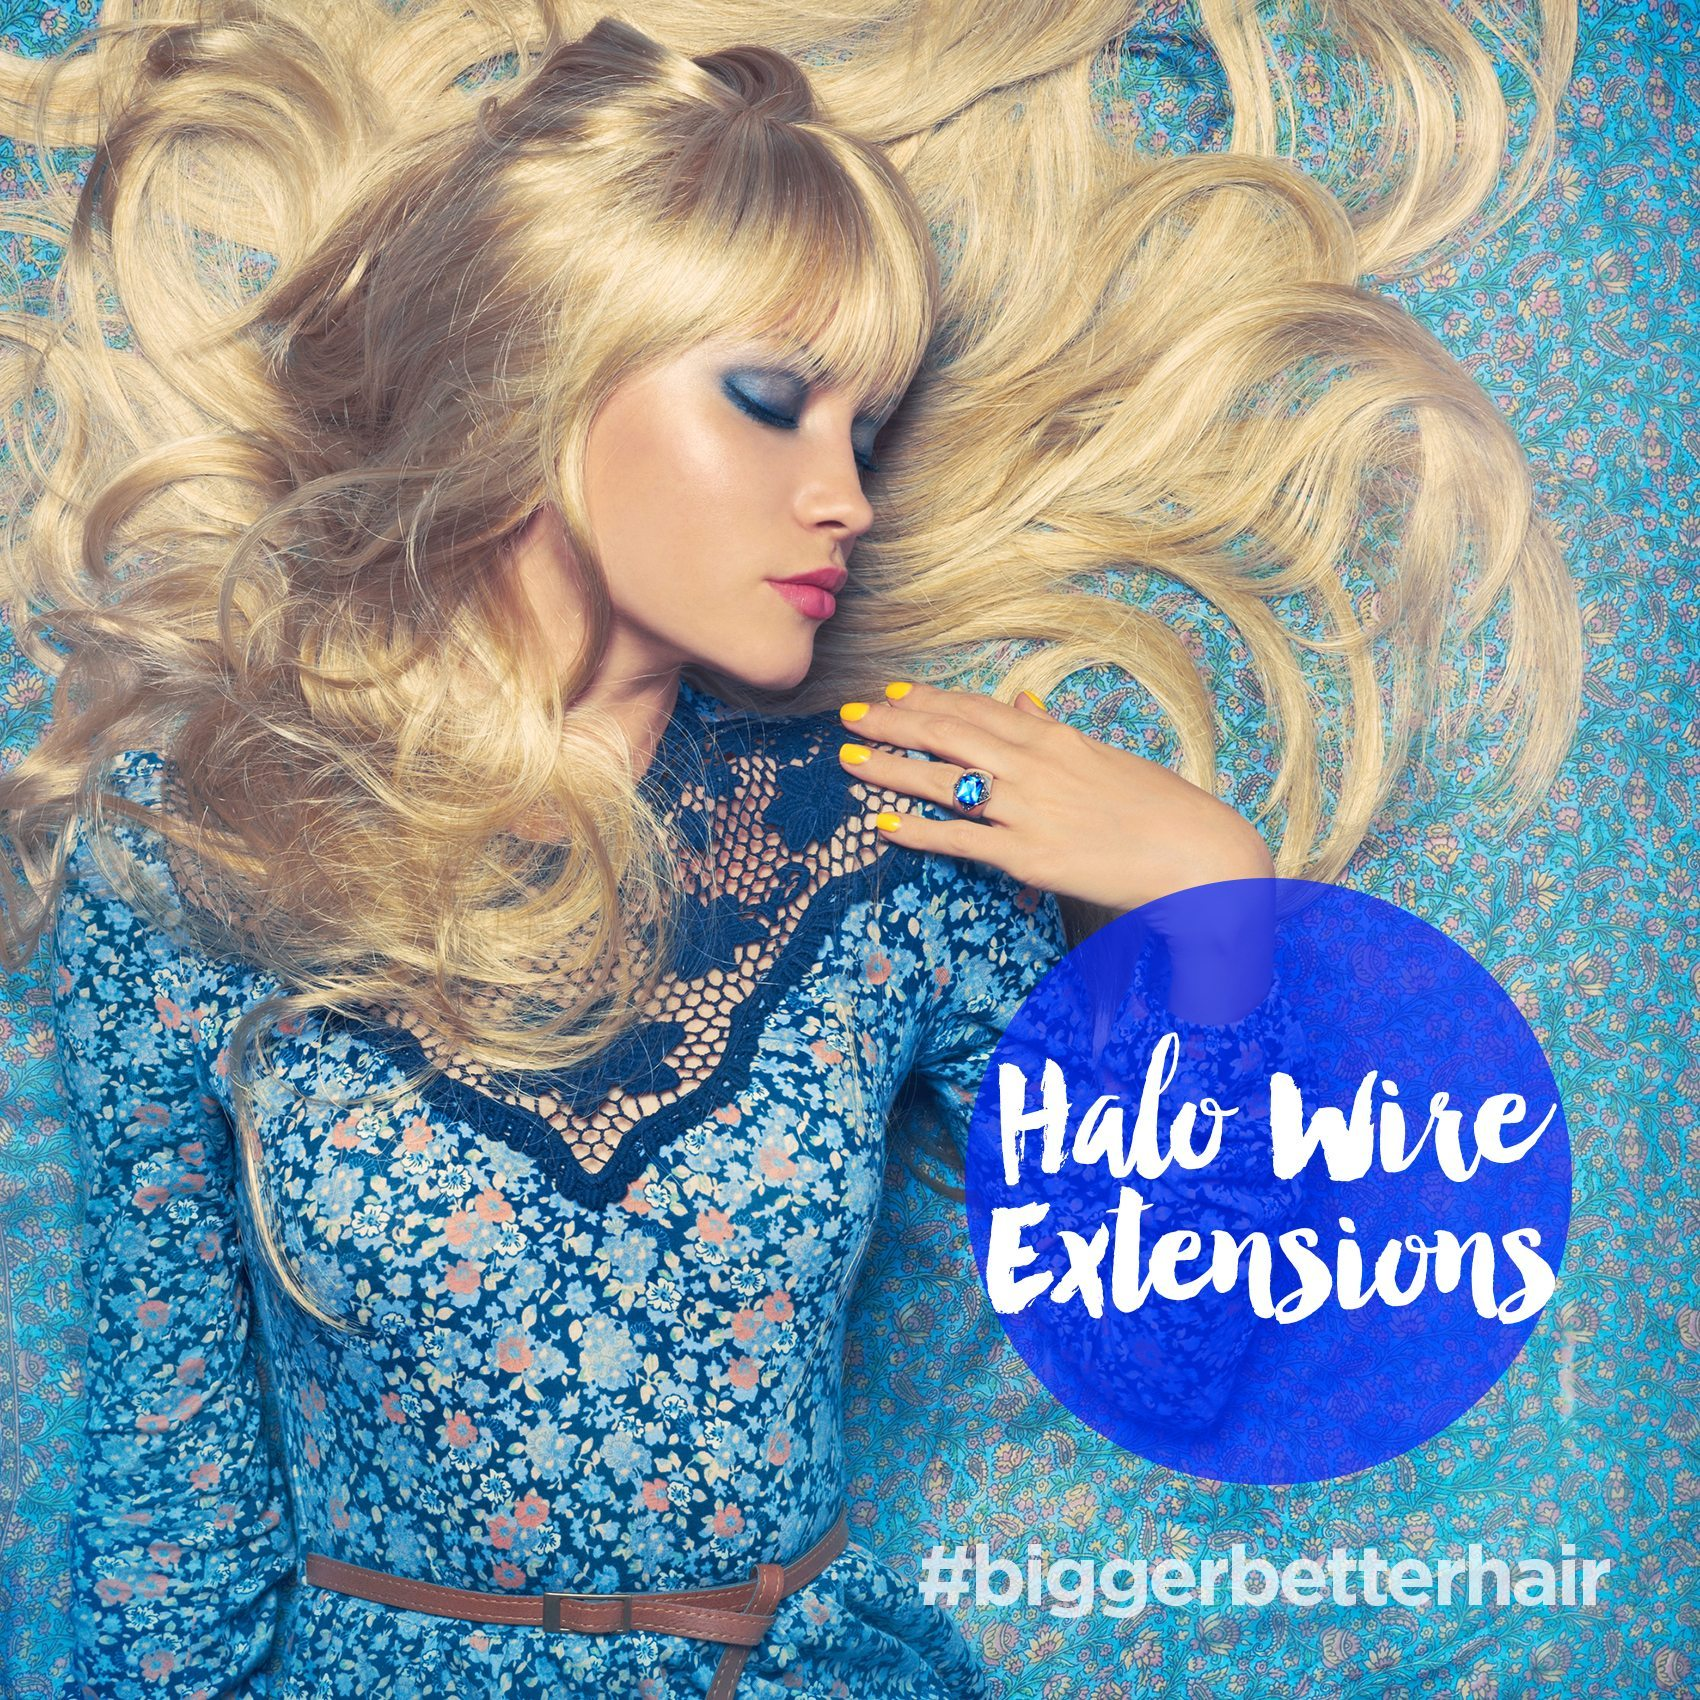 Halo Wire Extensions